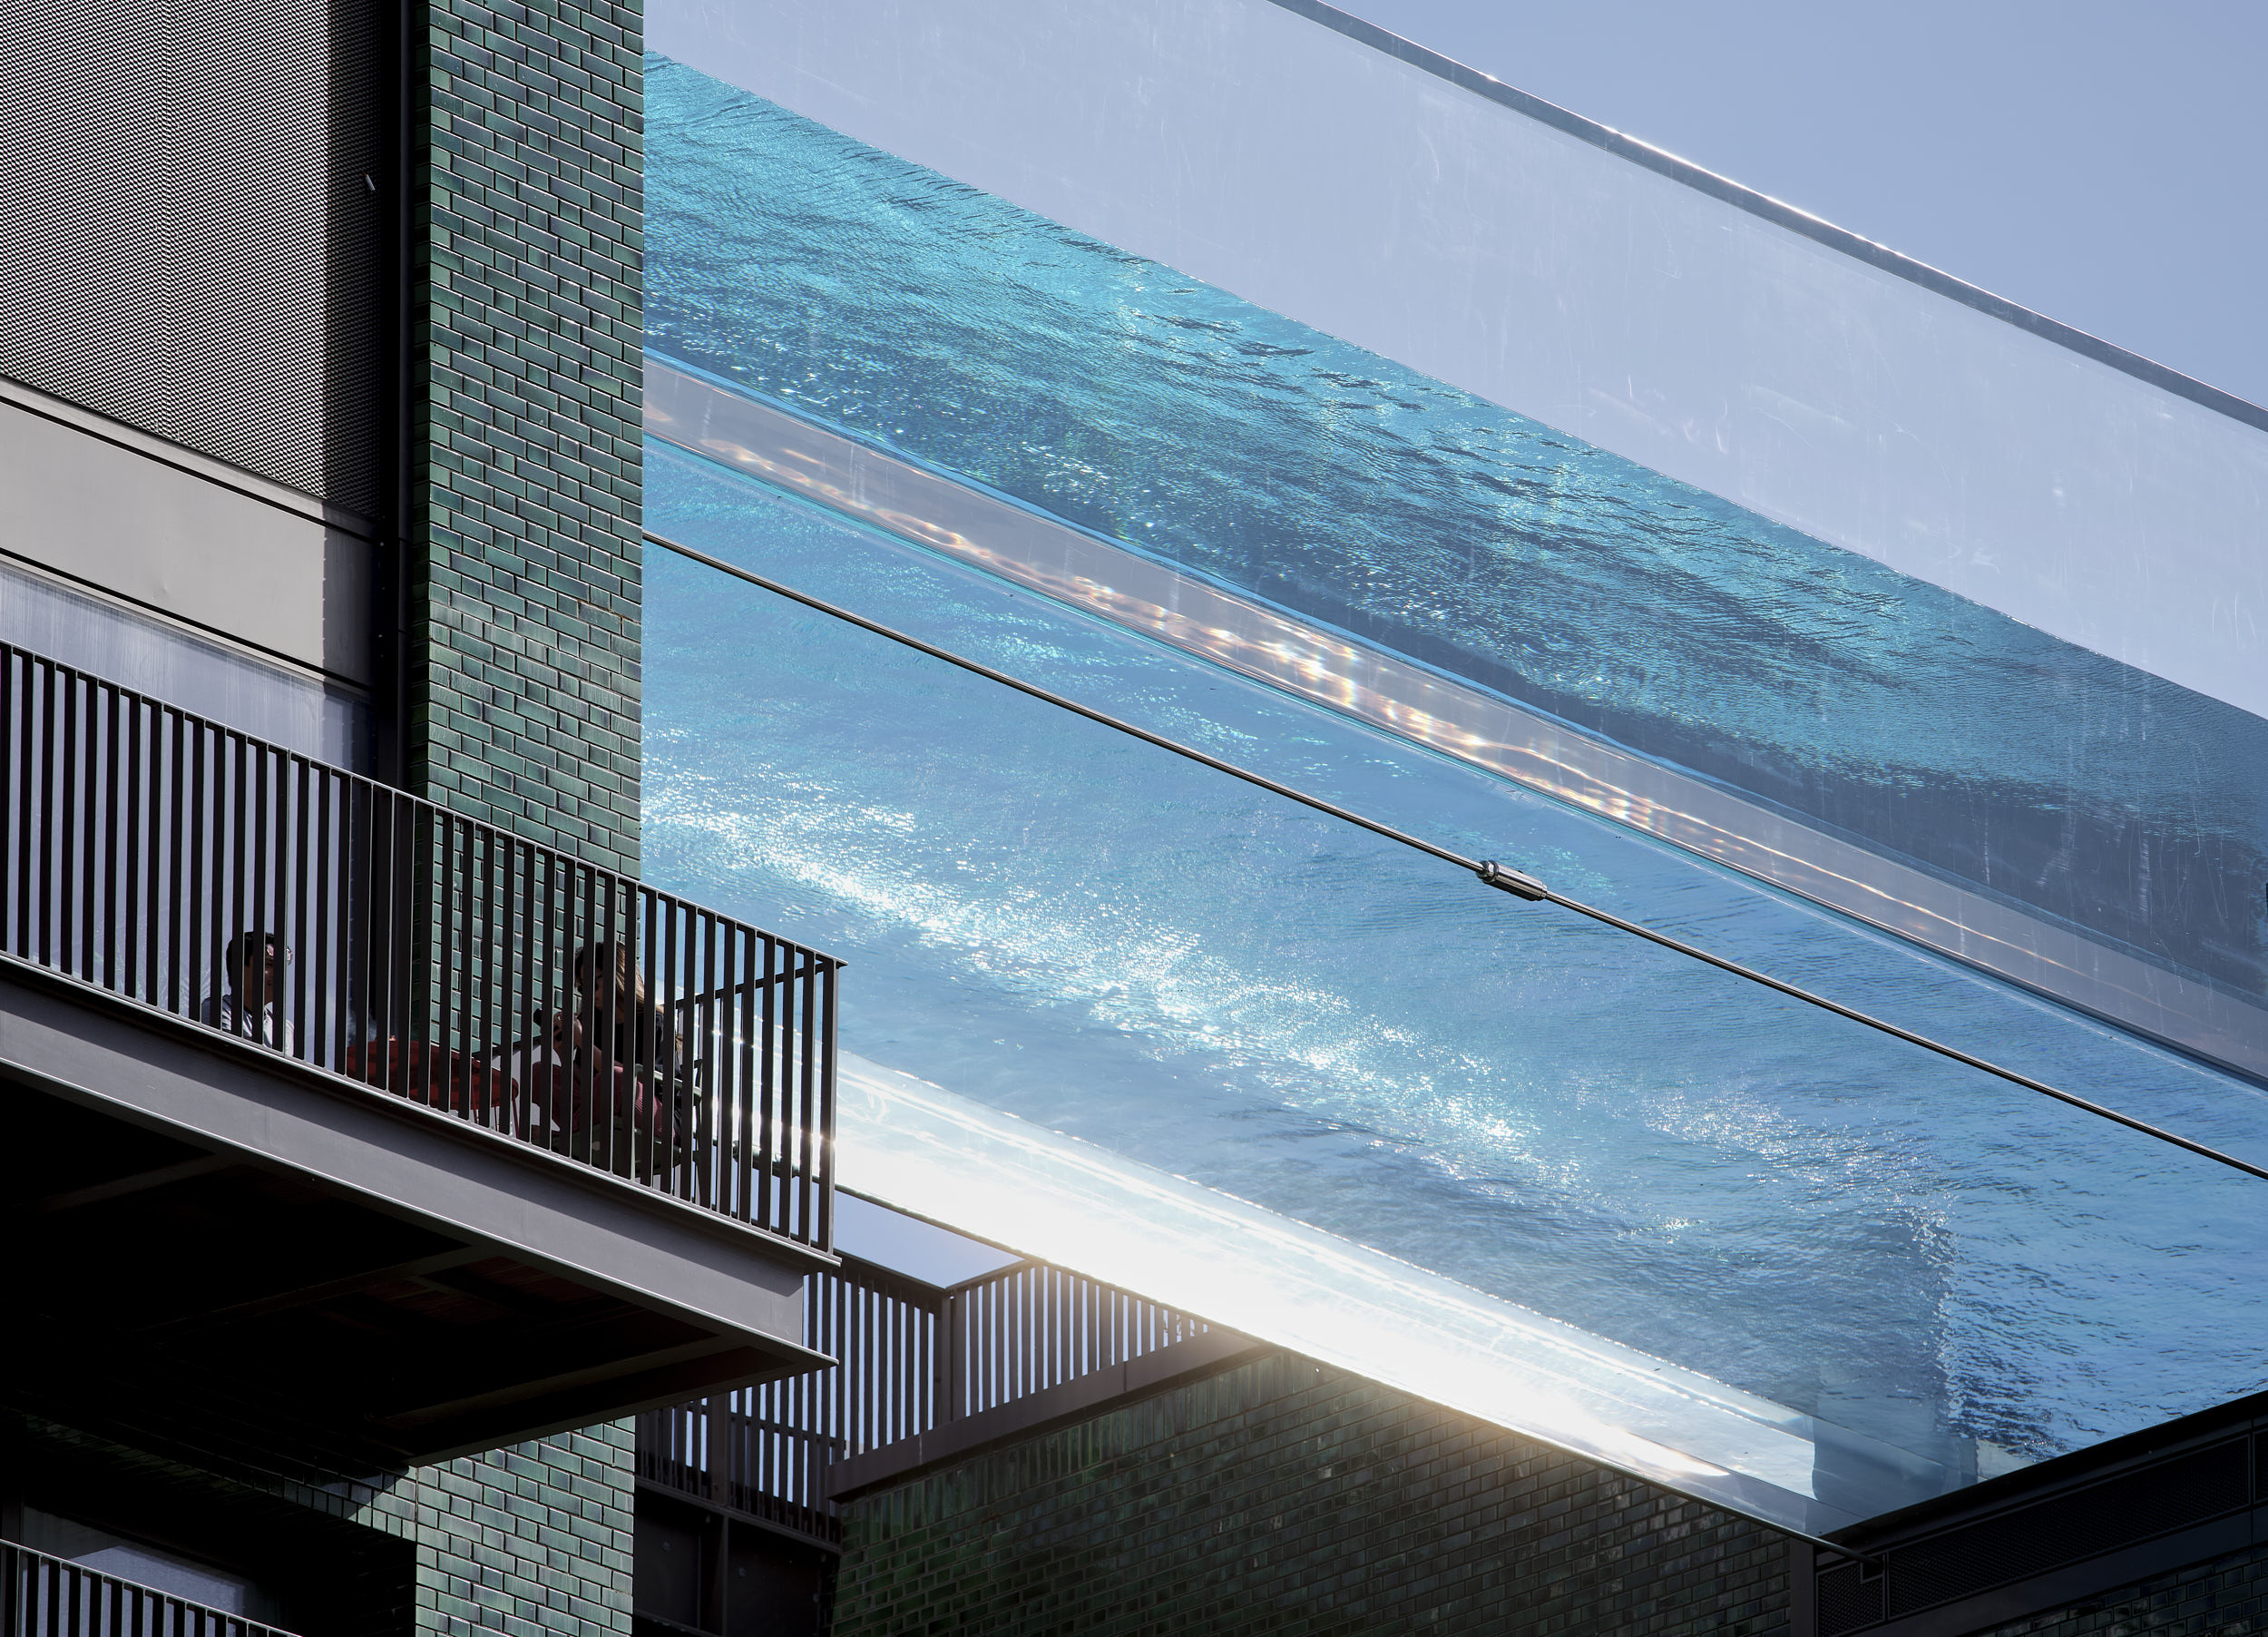 Skypool photograph showing the immediate residential architectural context.